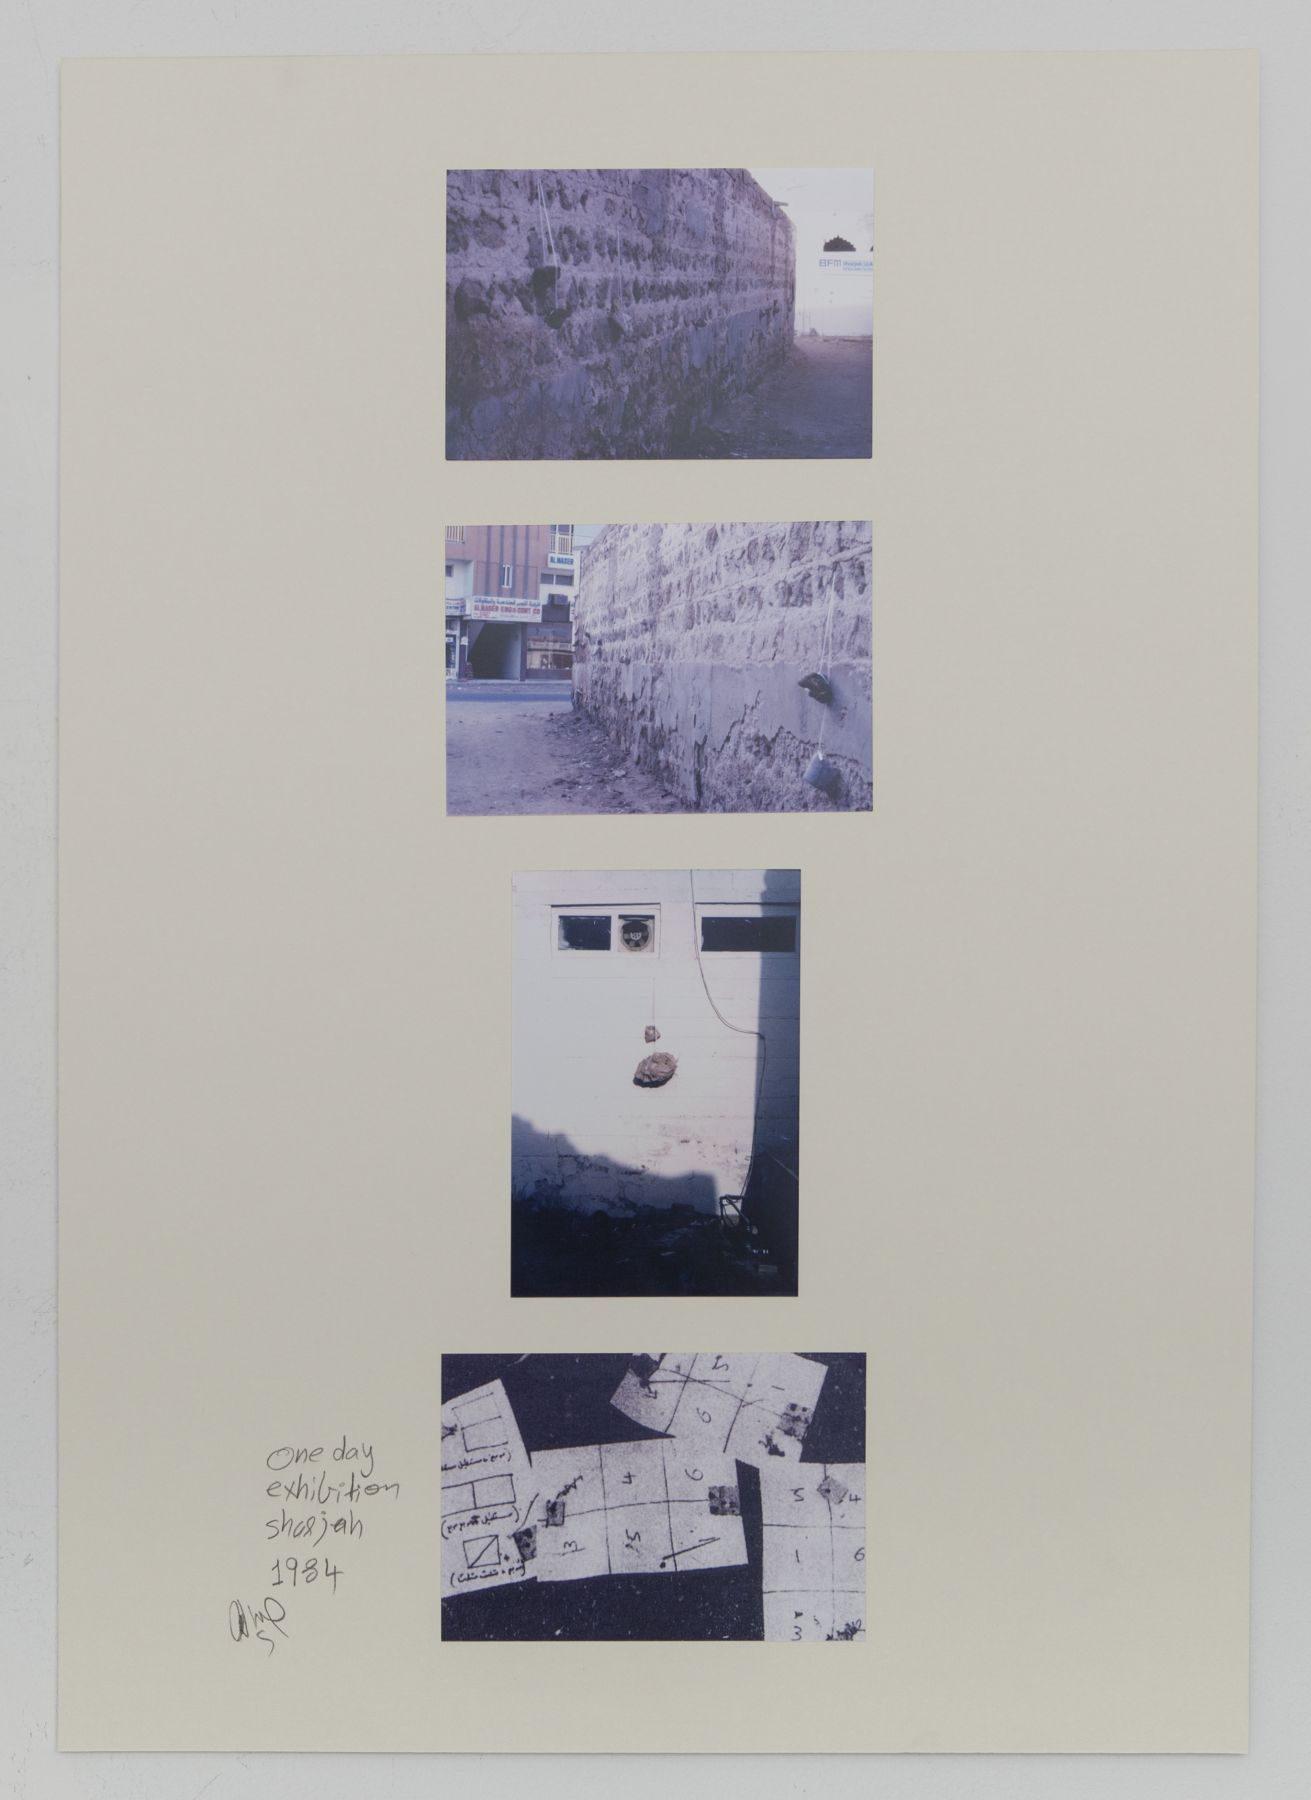 Hassan Sharif, One Day Exhibition-Sharjah, 1984